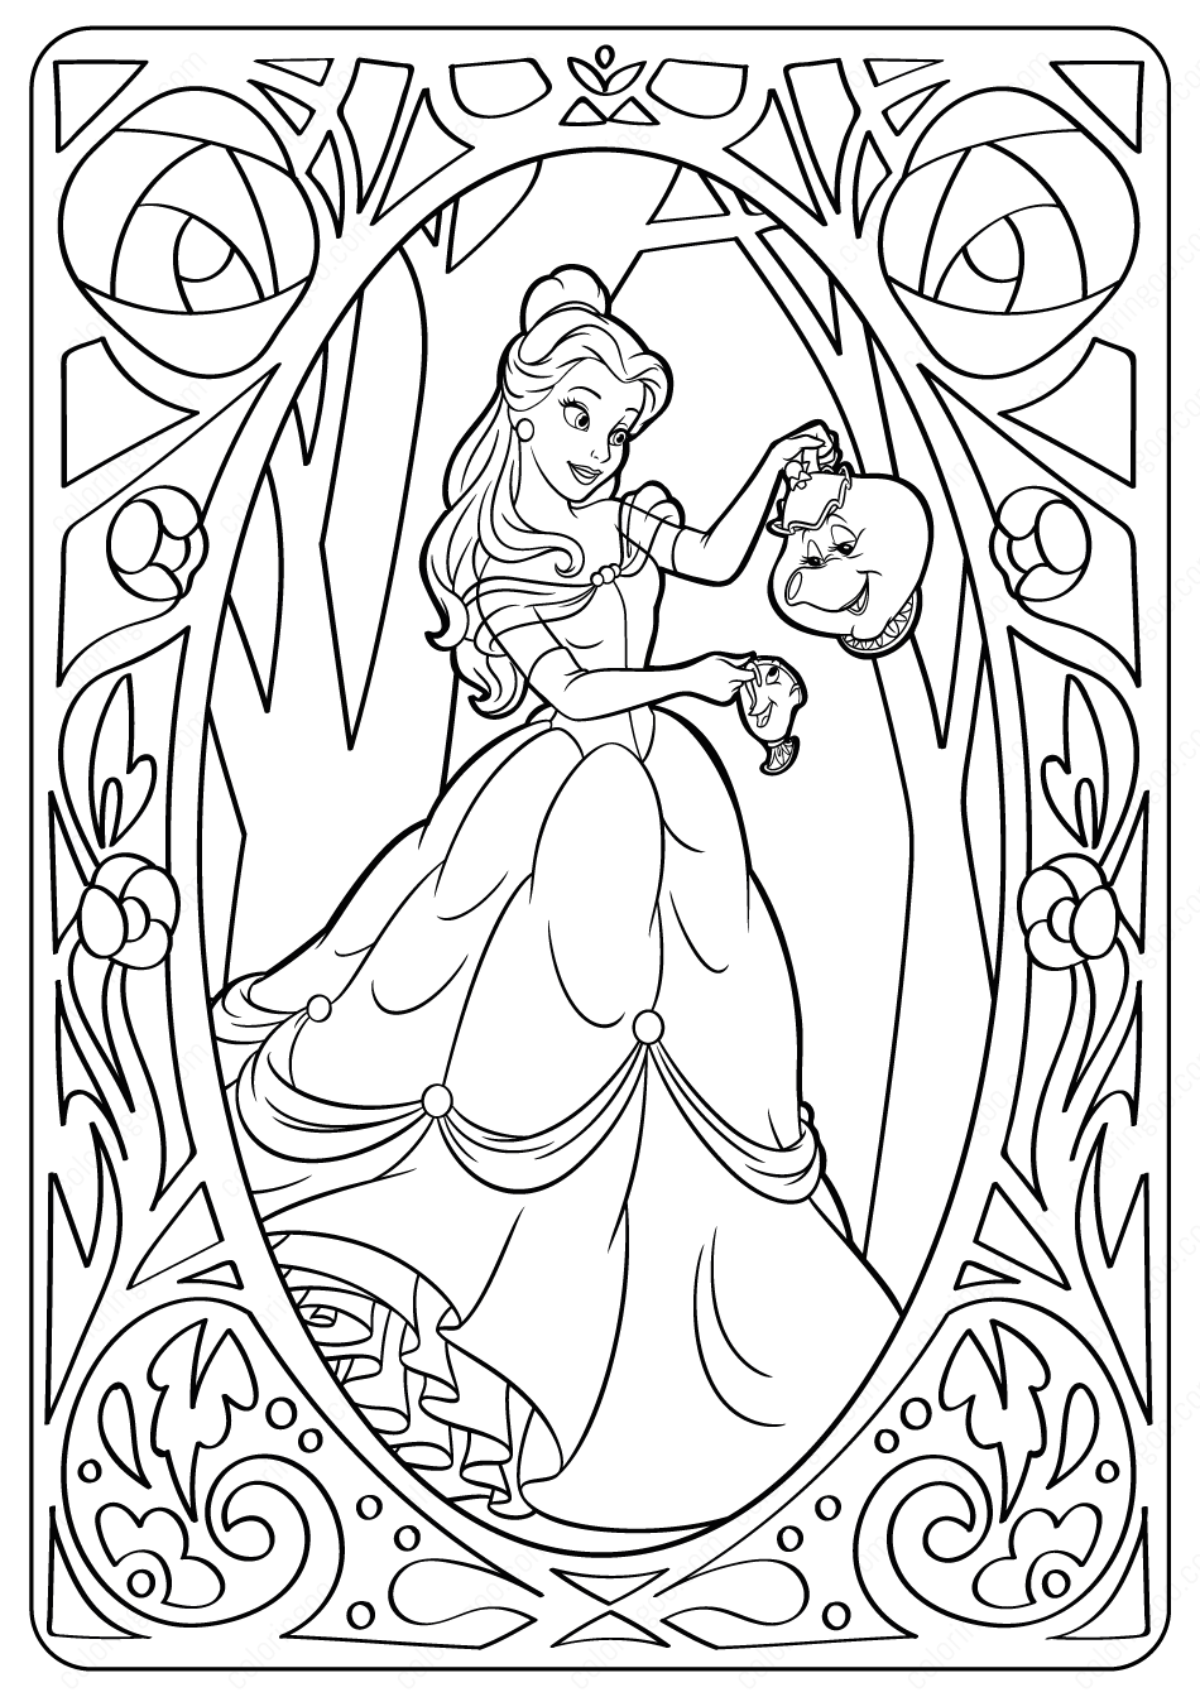 Belle Coloring Pages - GetColoringPages.com | 1697x1200